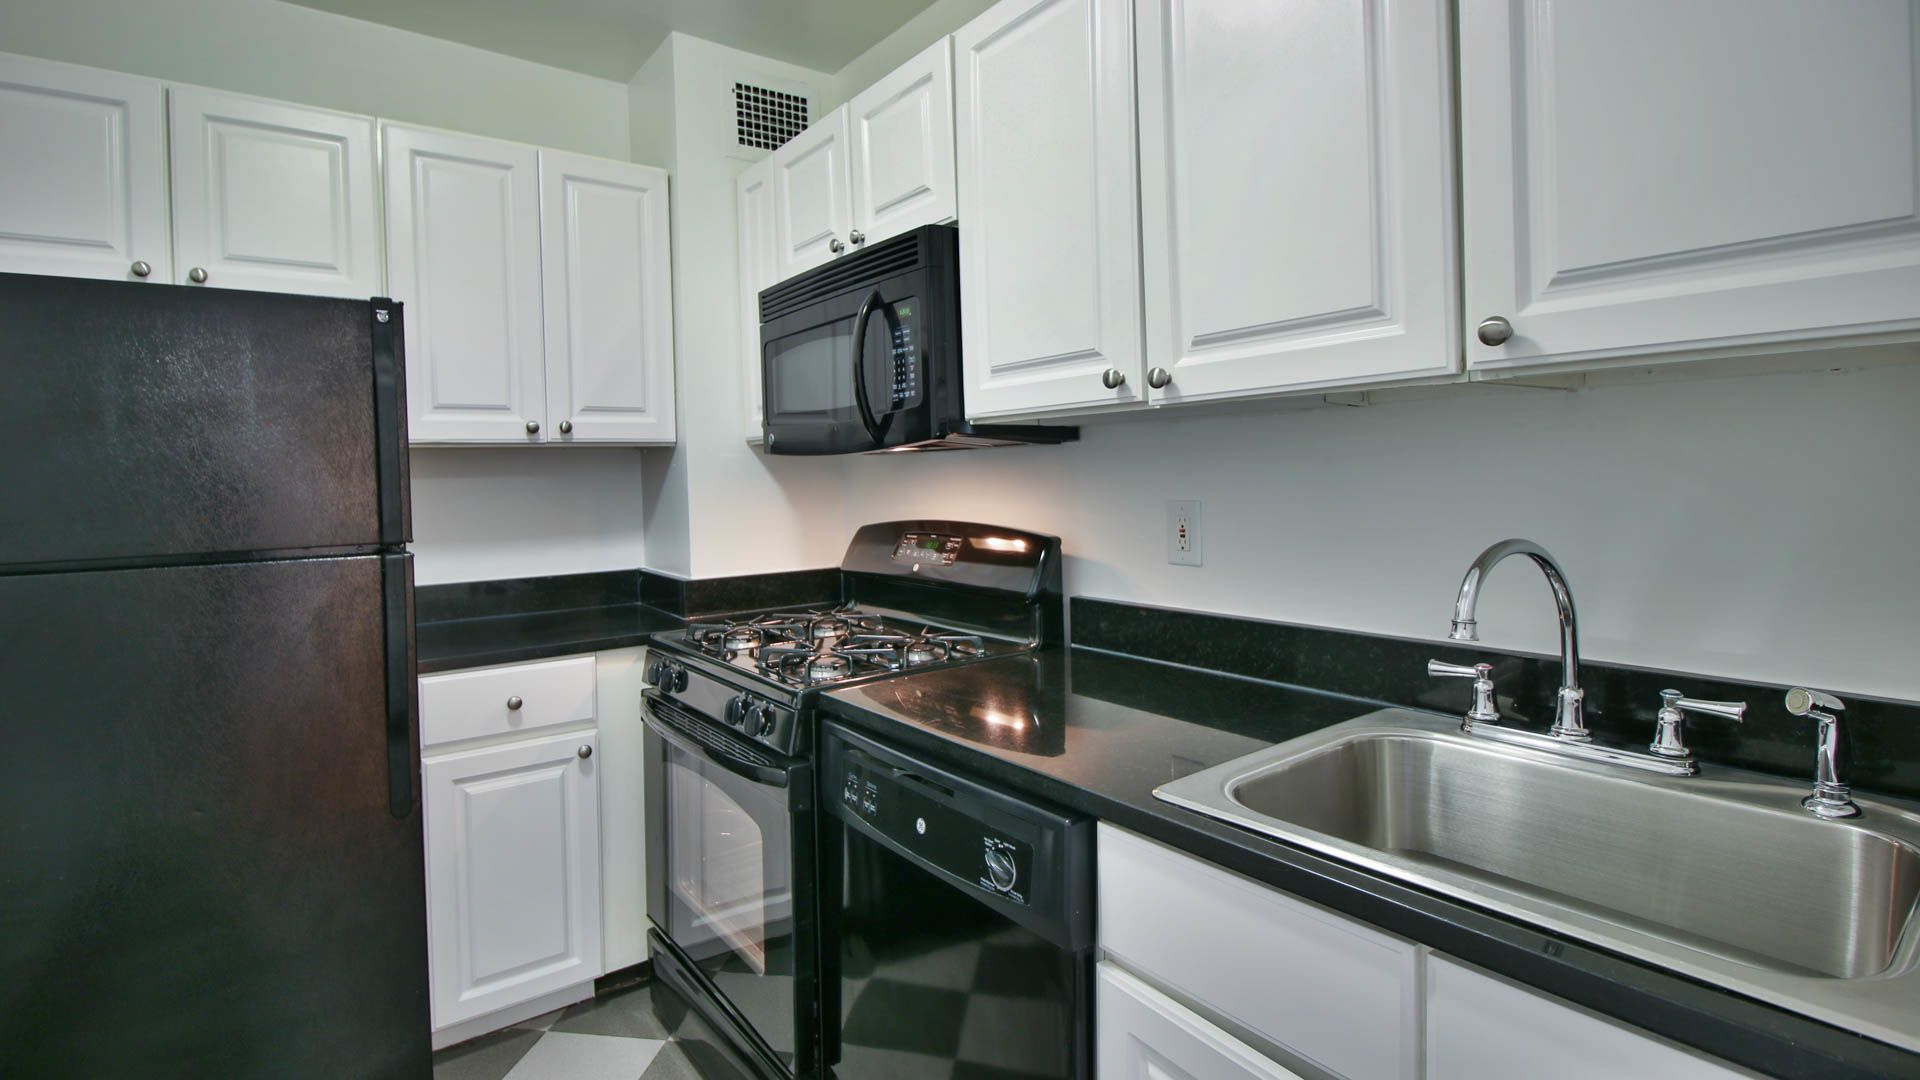 420 East 80th Street Apartments - Kitchen